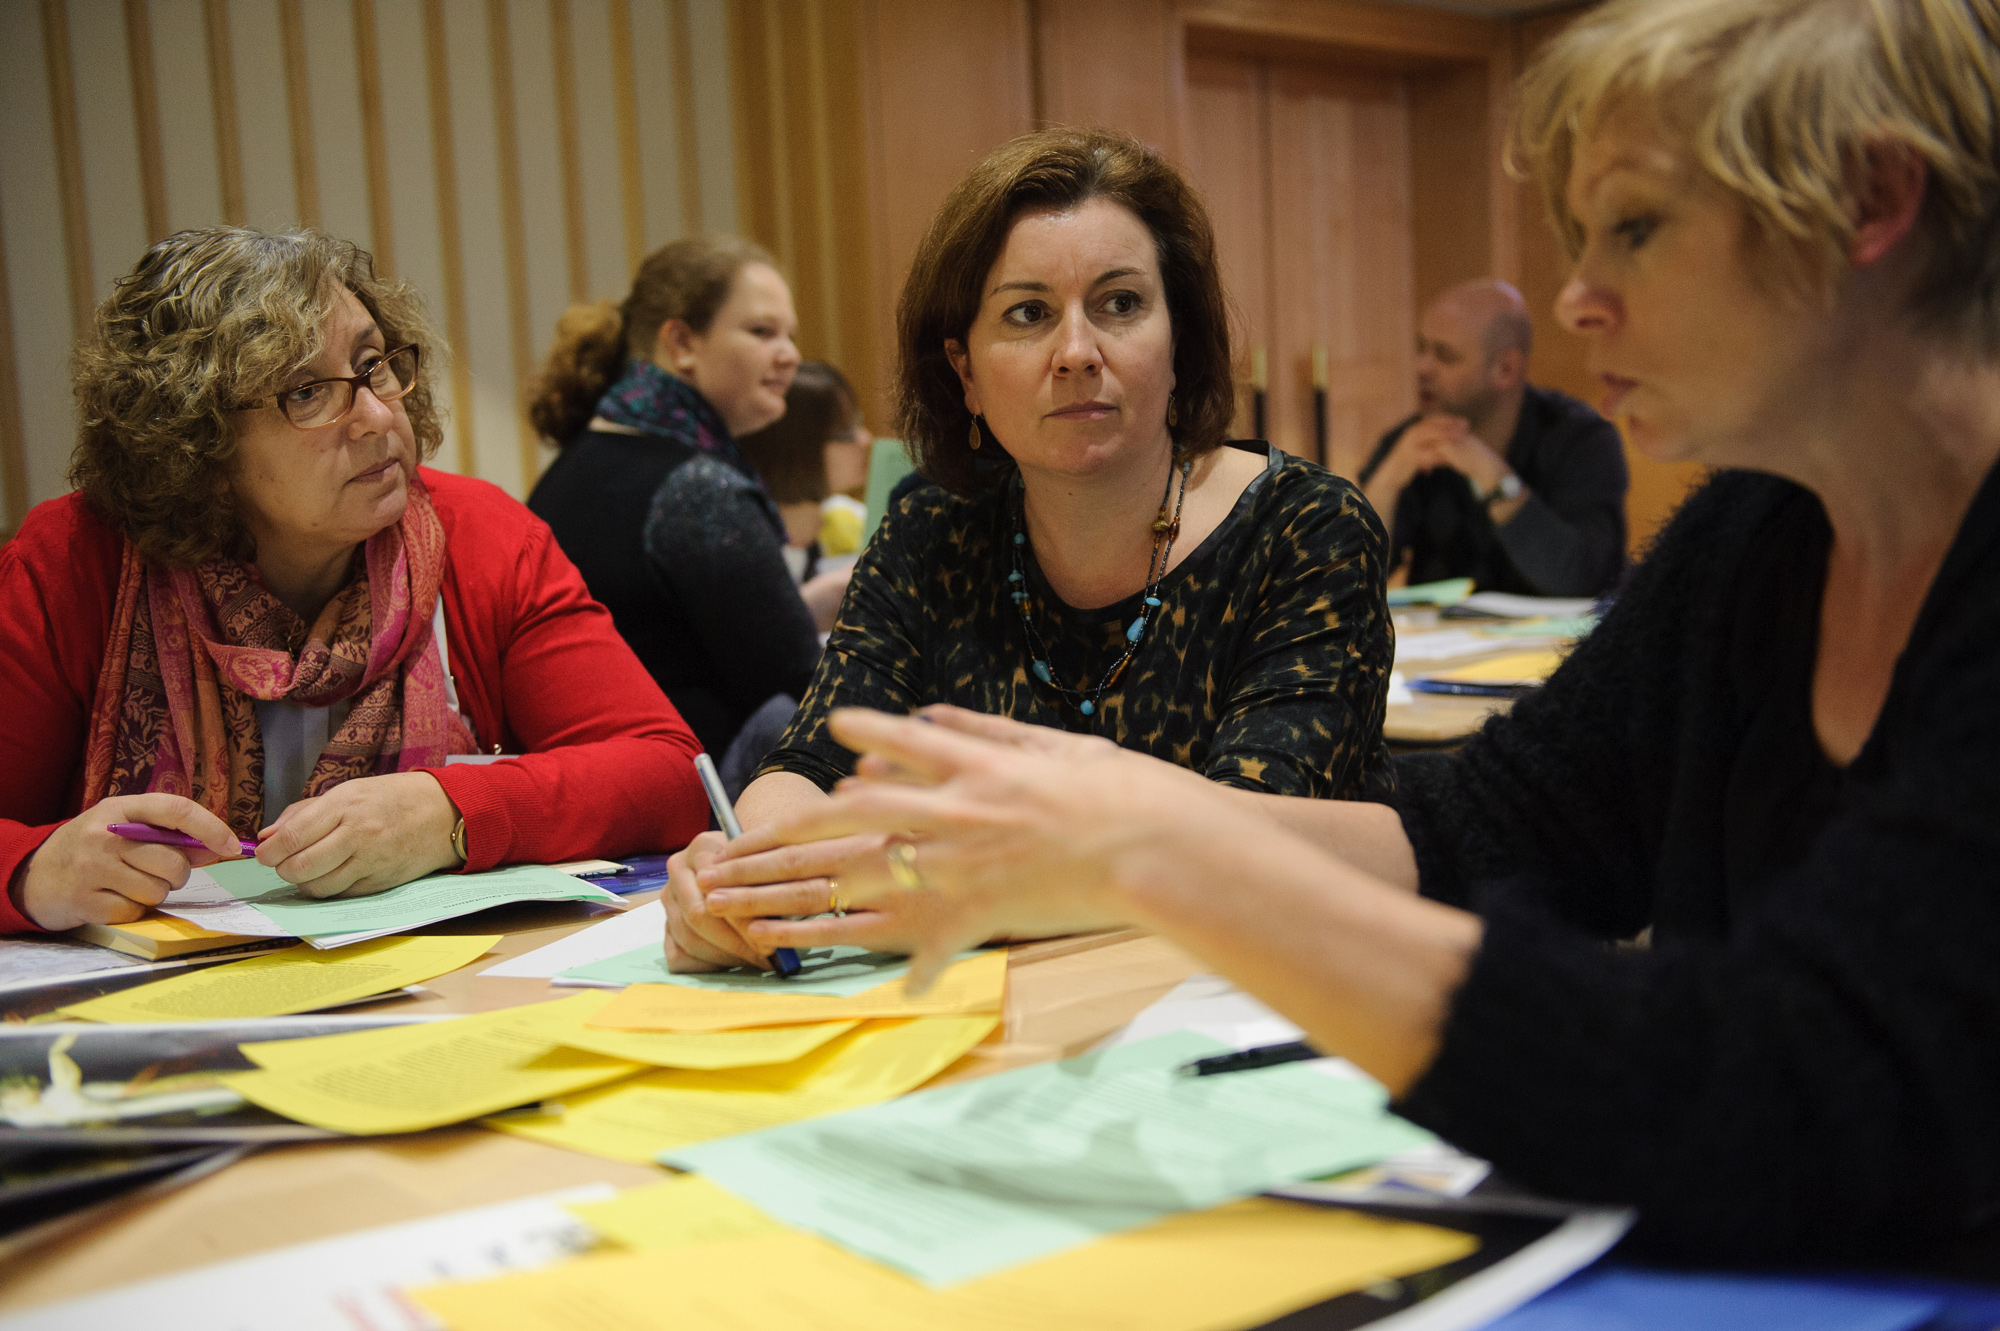 Teachers' Network